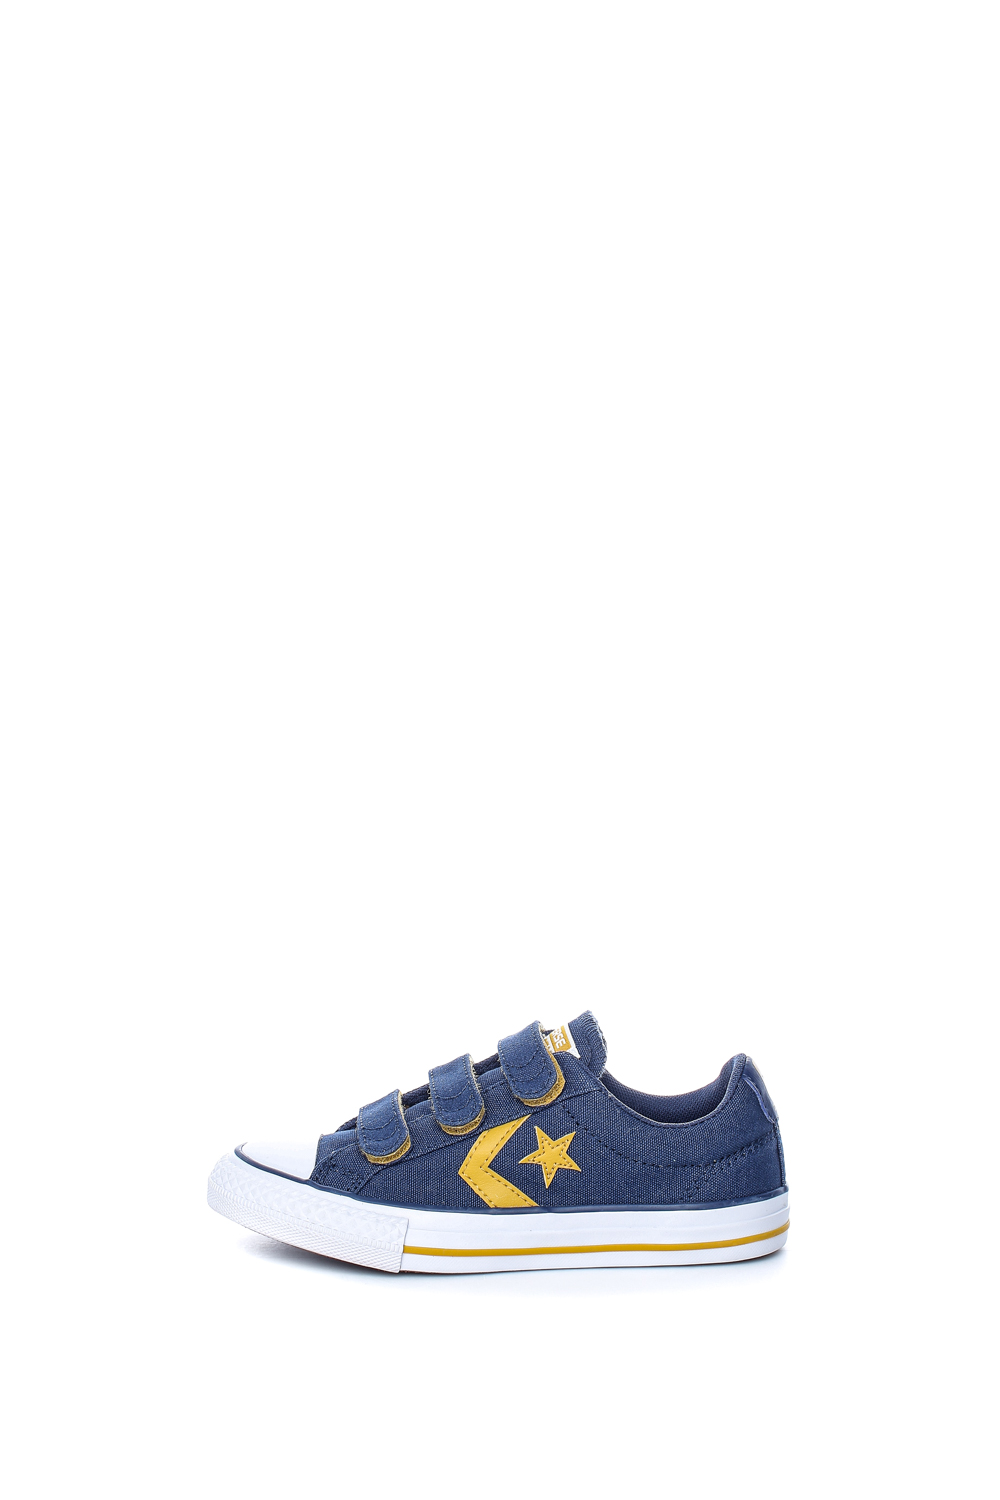 -48% Collective Online CONVERSE – Παιδικά παπούτσια CONVERSE Star Player EV  V Ox μπλε d48c466ab6e